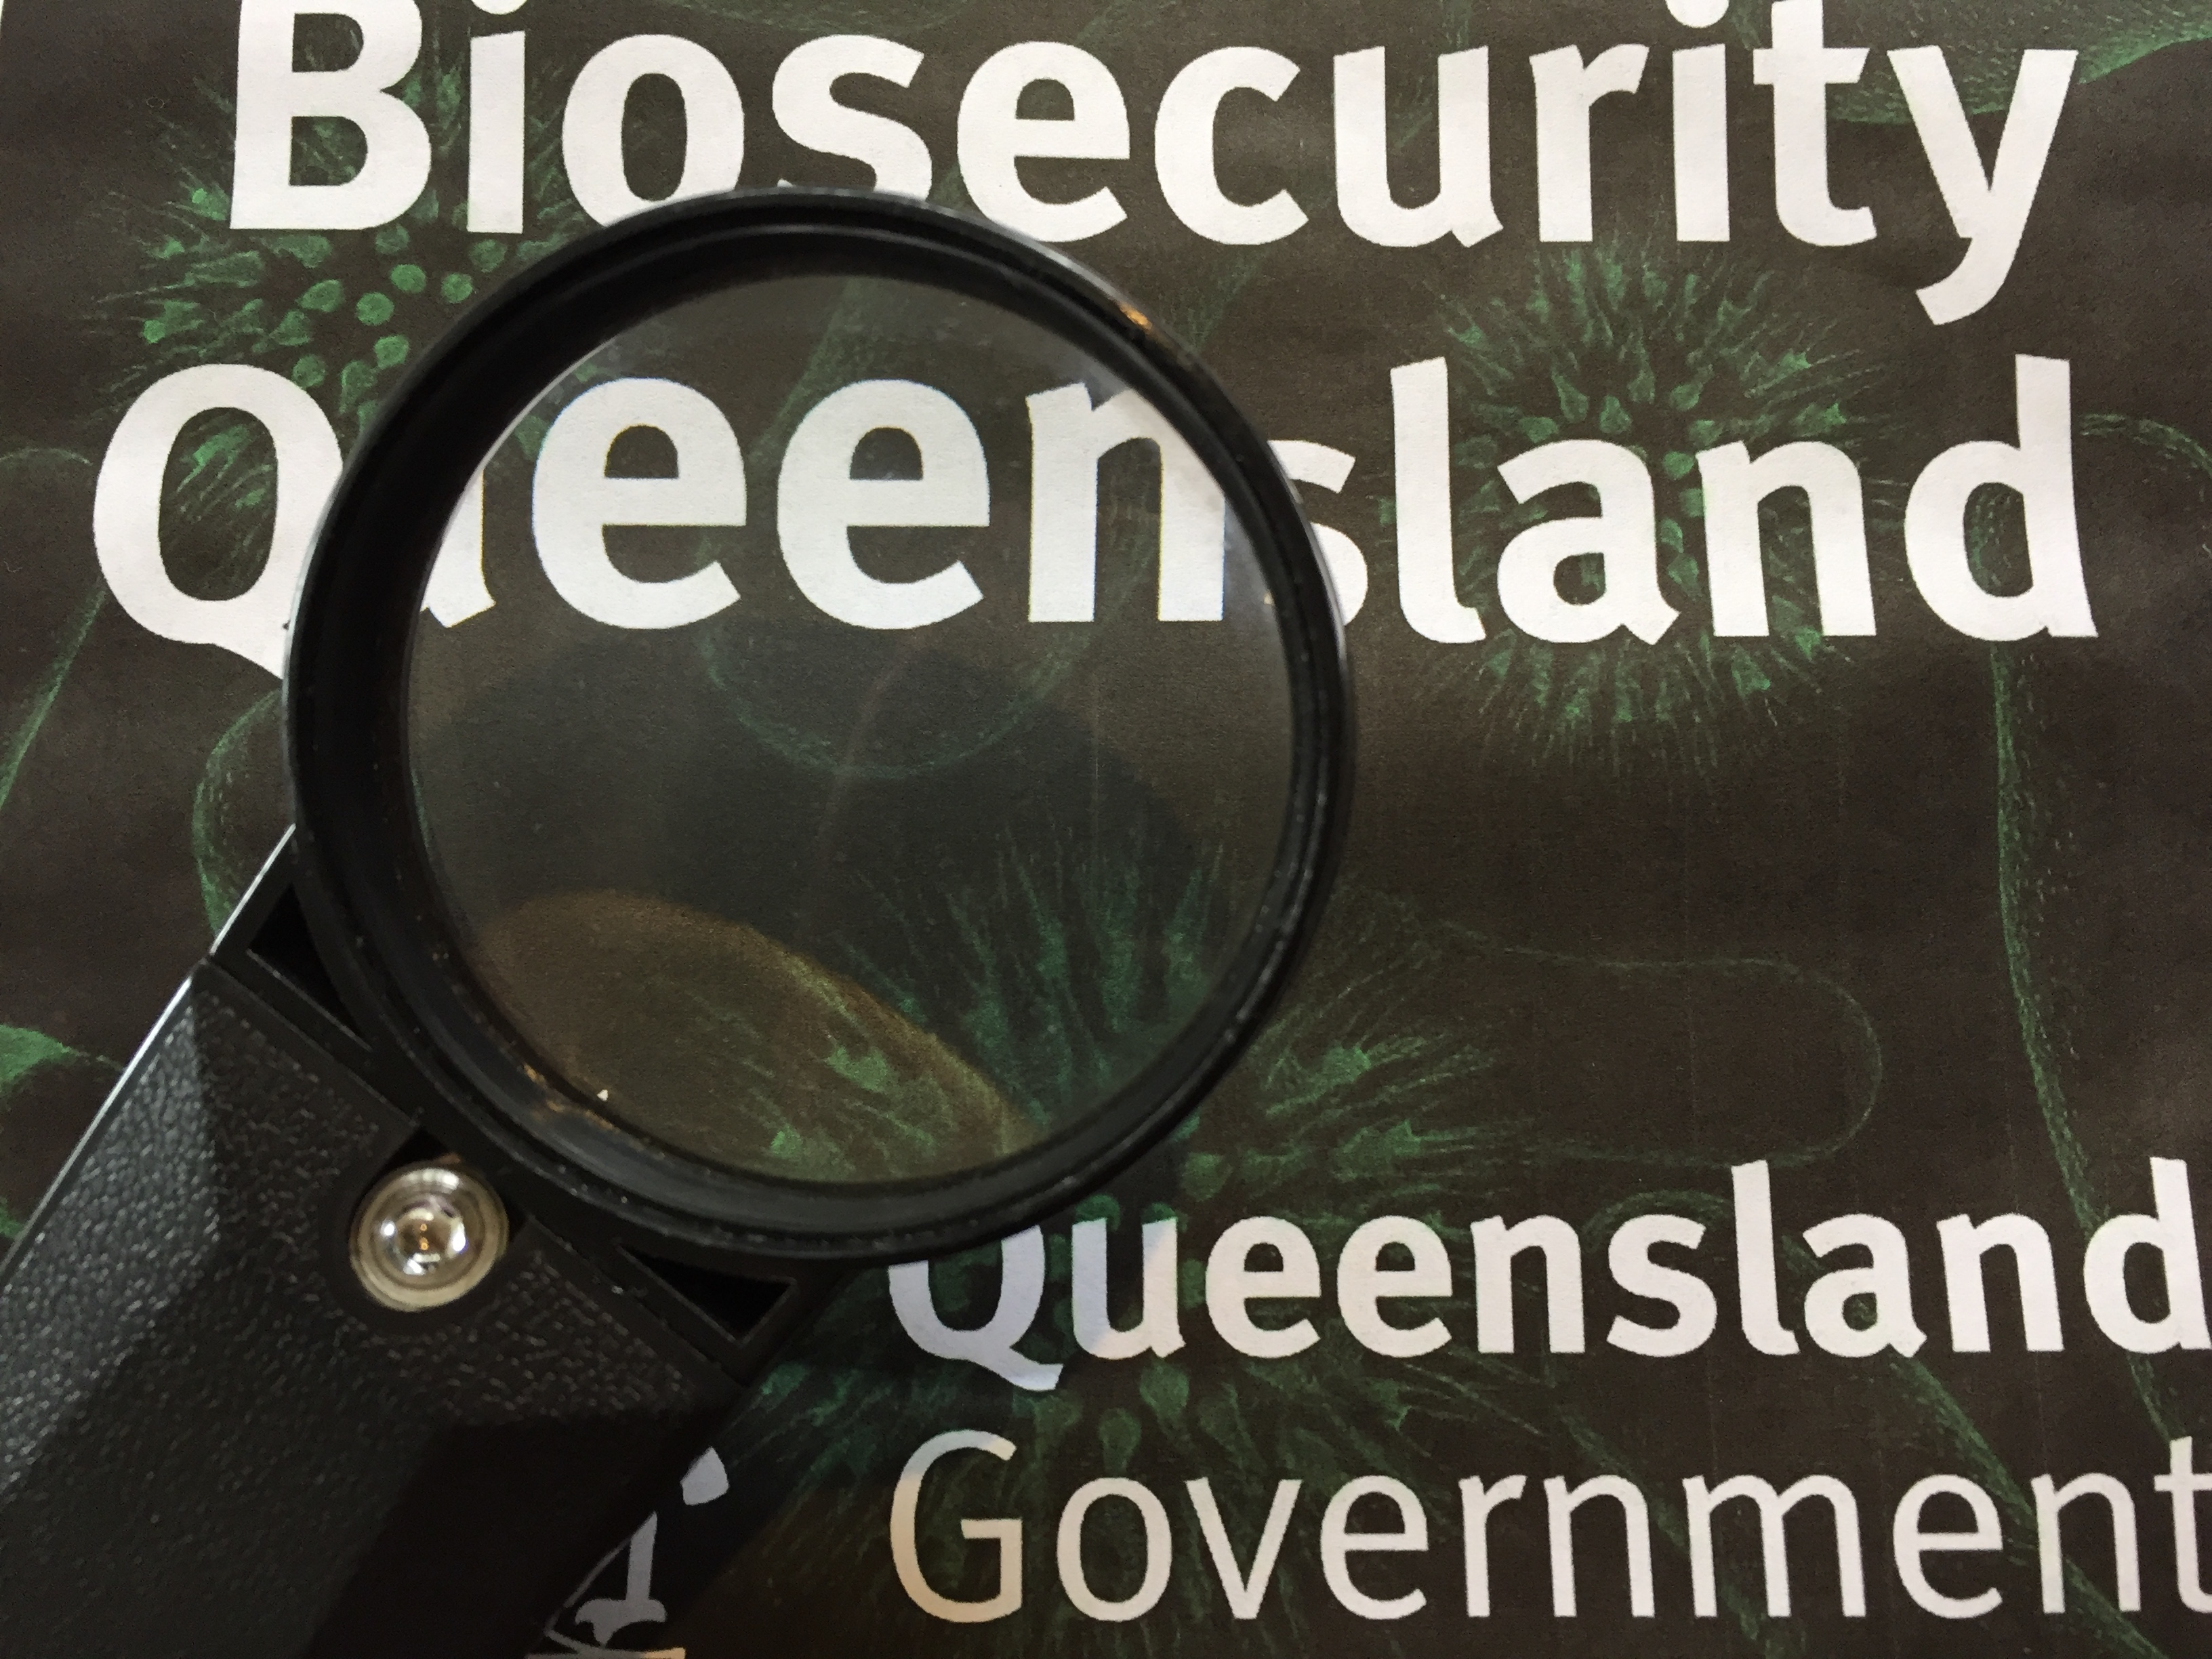 GM of Biosecurity Queensland's fire ant program tried to shut down criticism at a community forum in Gatton with a 'divide and conquer' format. They didn't let him.